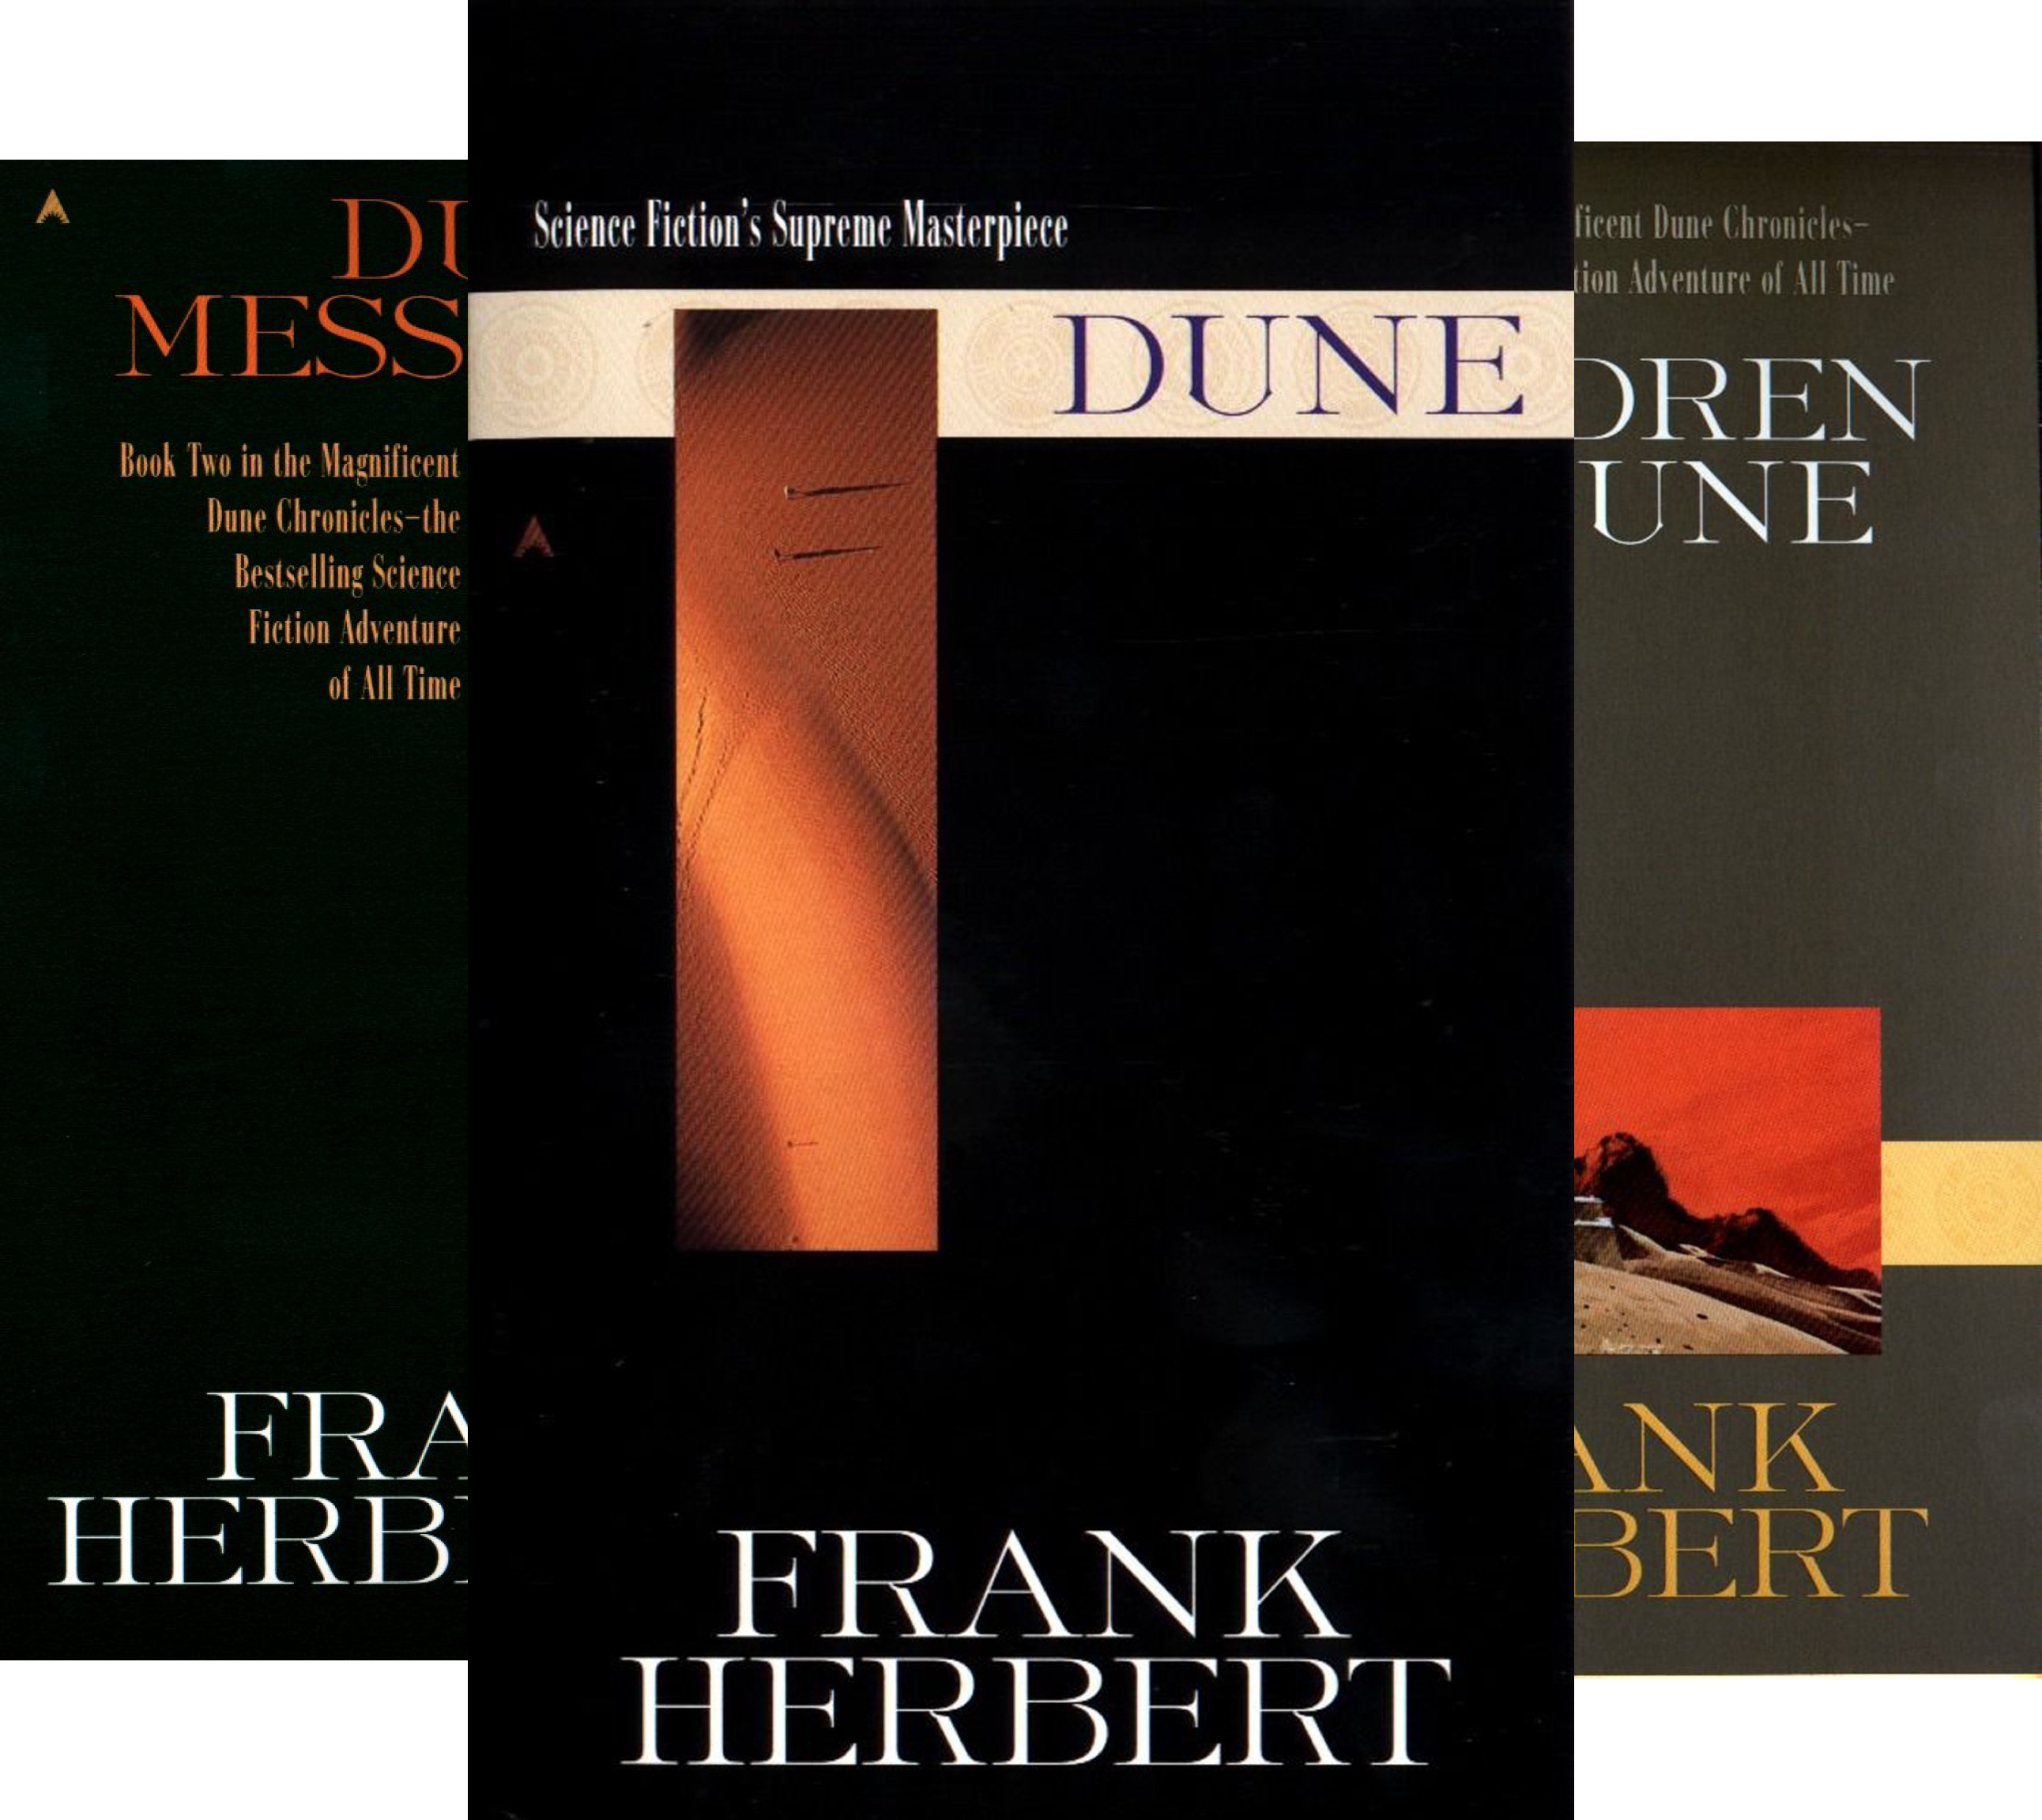 frank herbert and his classic novel dune Dune is a 1965 science fiction novel by american author frank herbert, originally published as two separate serials in analog magazine.